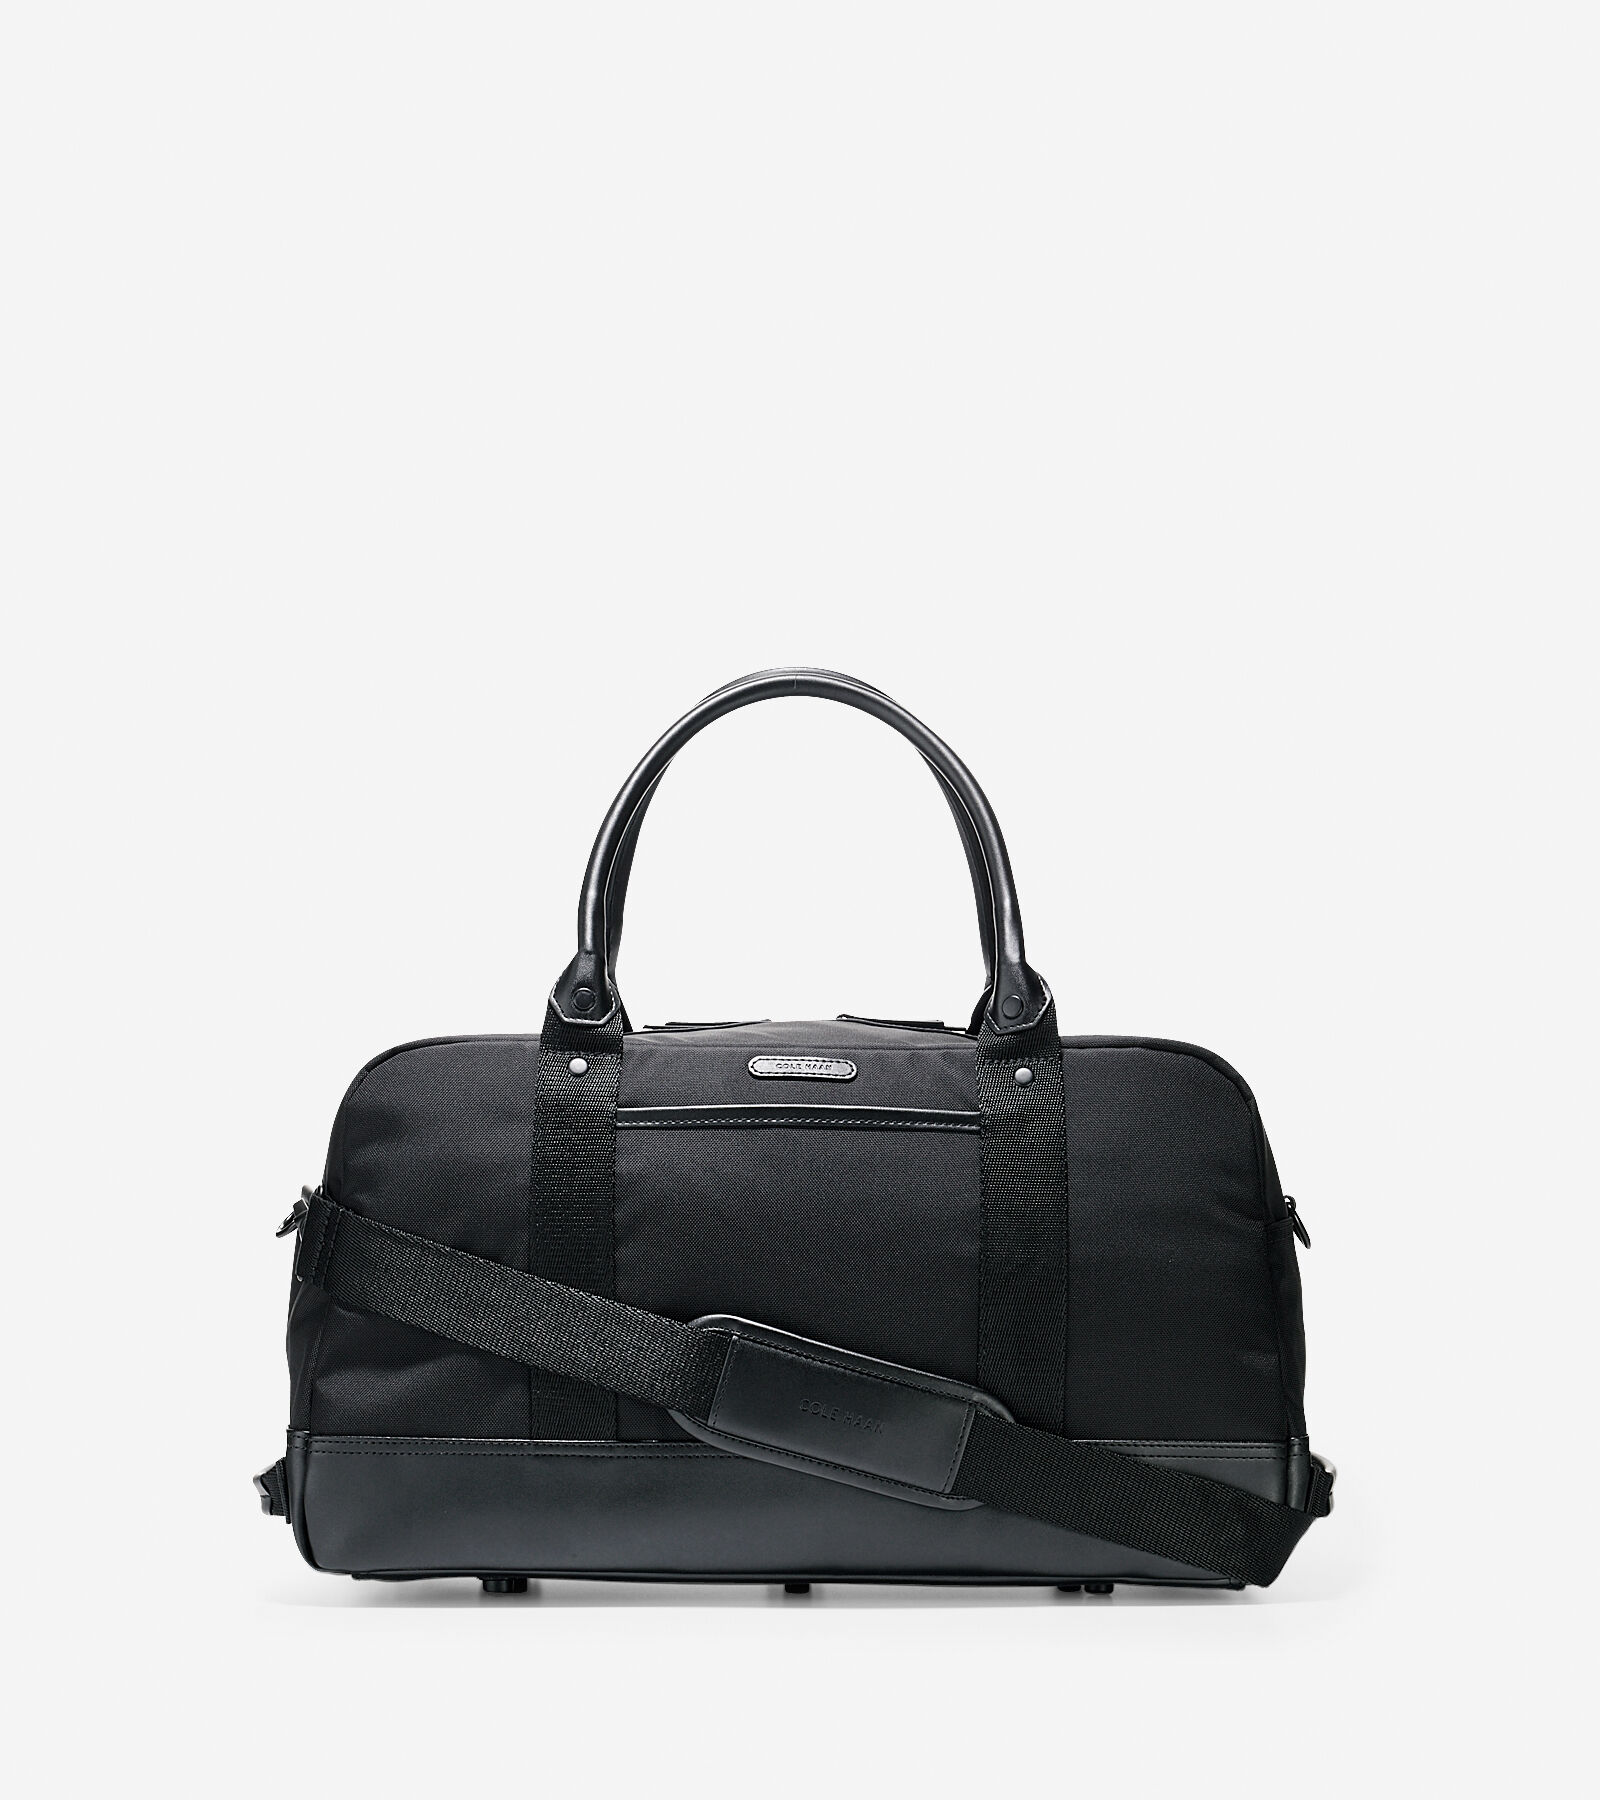 small duffle bag cheap   OFF58% The Largest Catalog Discounts 1cef7d699a9a6